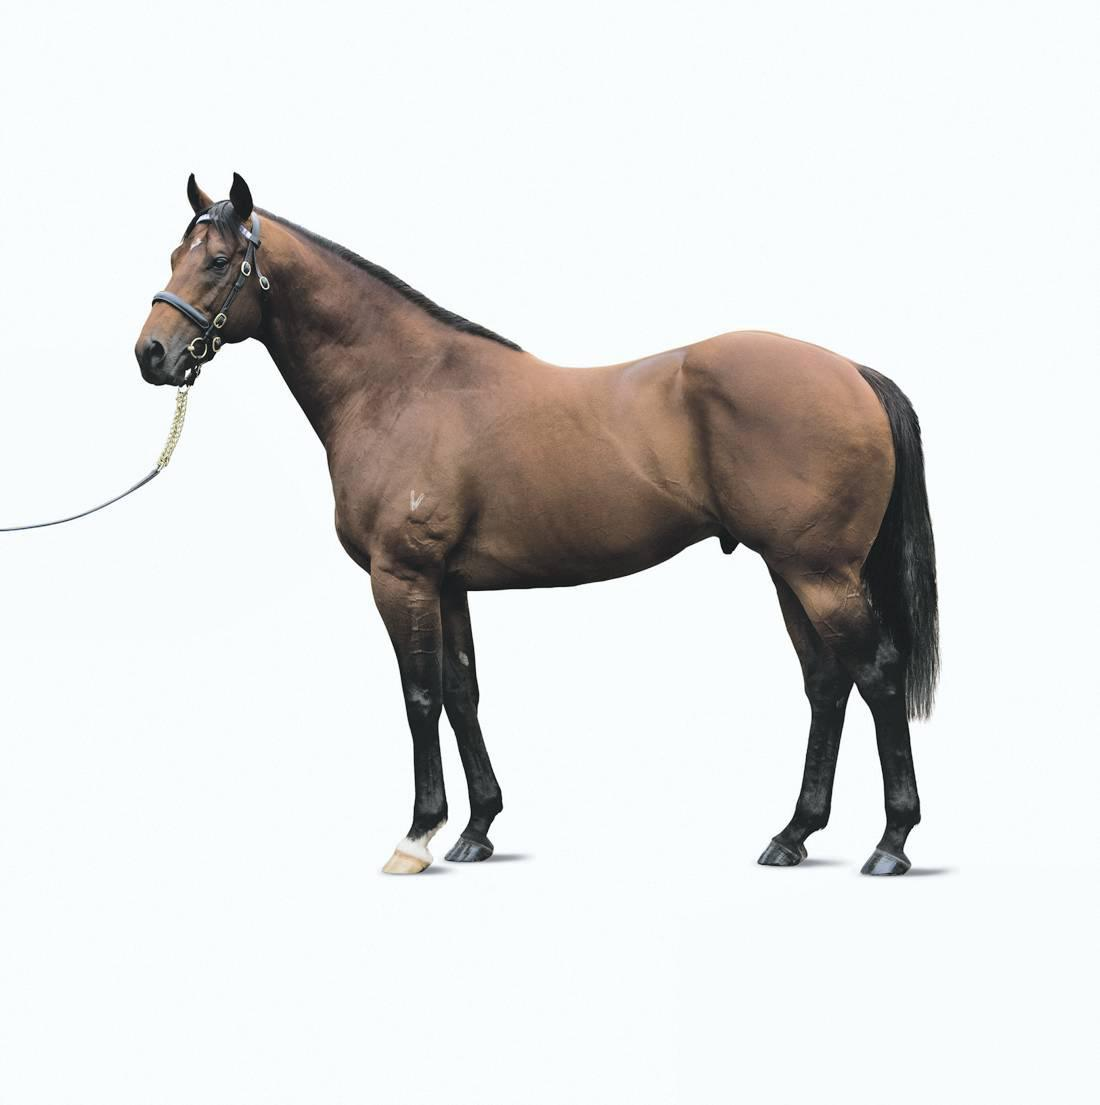 SIRE REVIEW: Excel will soon exceed the century mark